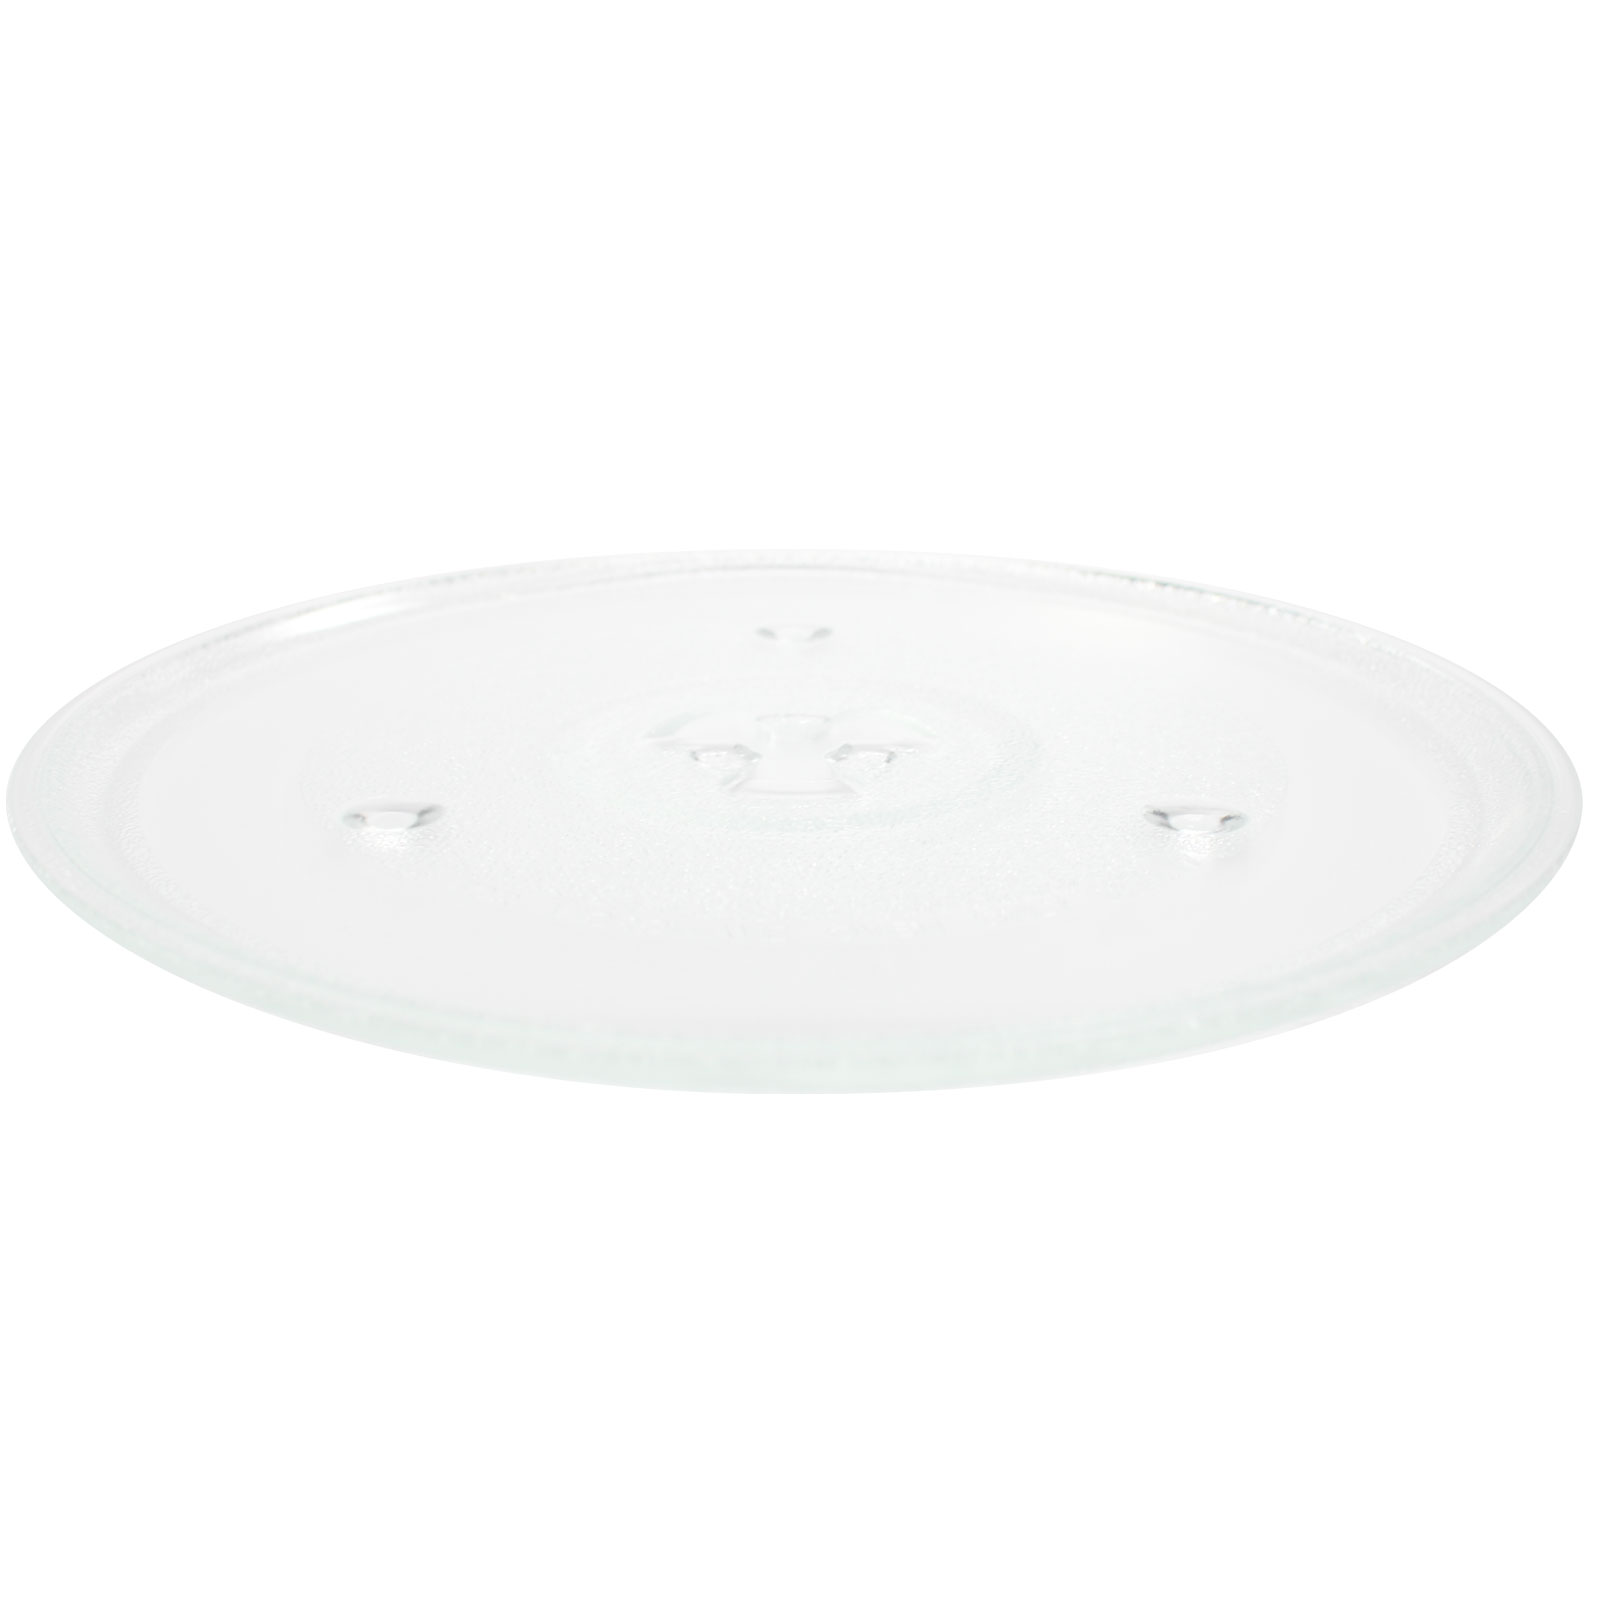 replacement general electric g e wb49x10185 microwave glass plate compatible general electric g e wb49x10185 microwave glass turntable tray